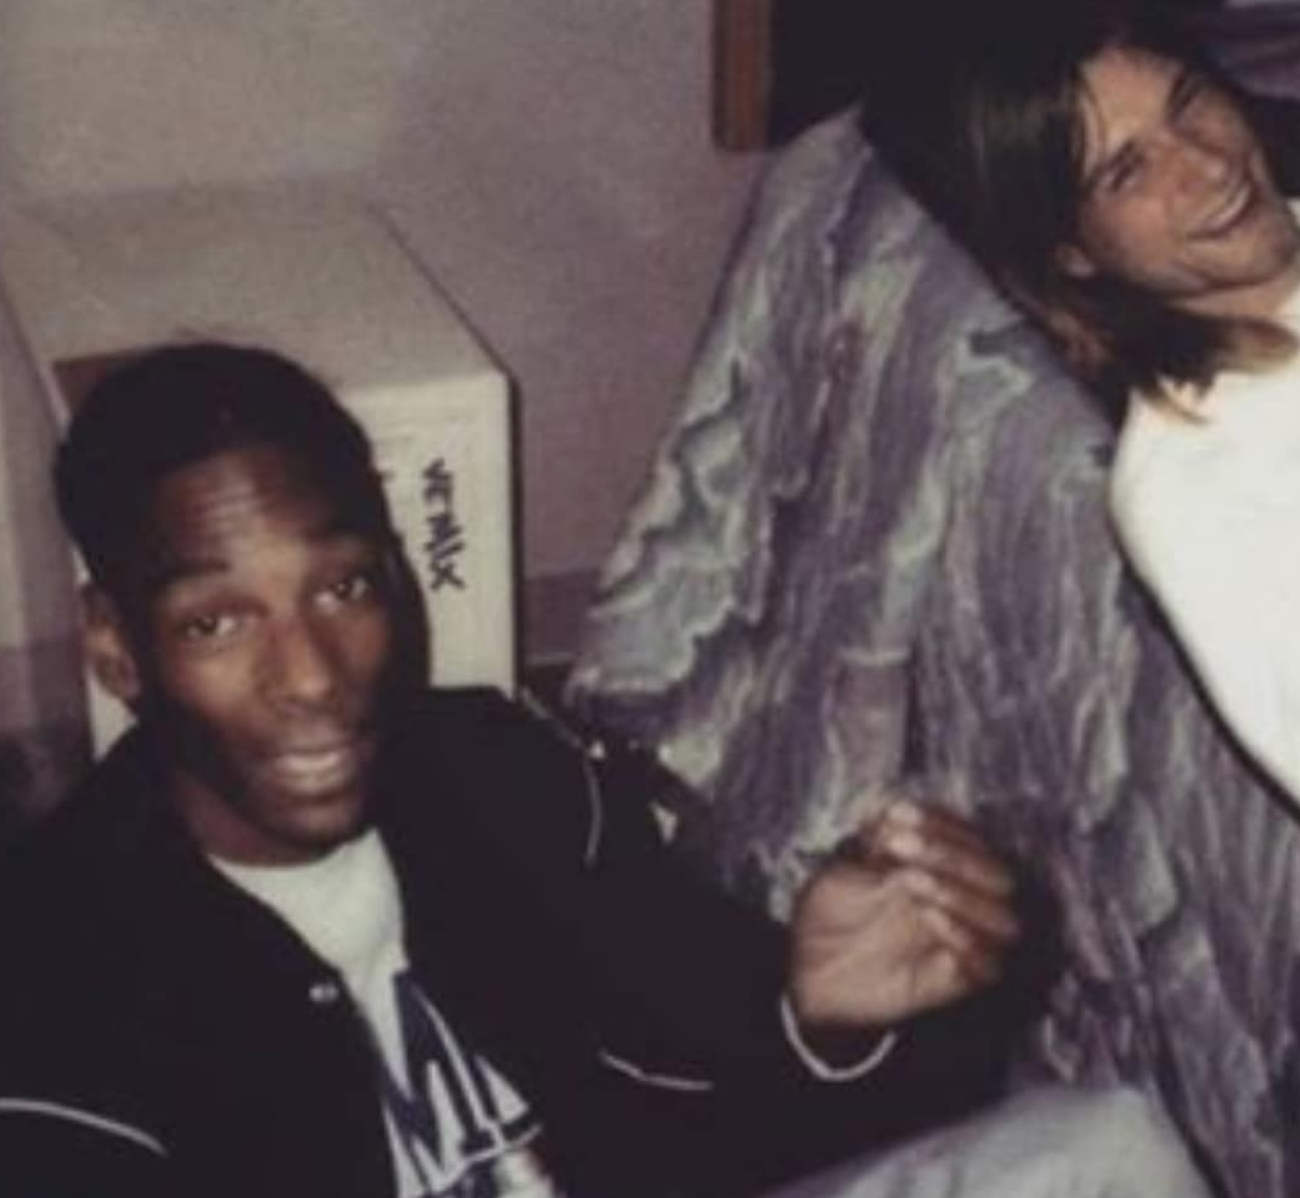 A Photo of Snoop Dogg Smoking Weed With Kurt Cobain Set Instagram on Fire